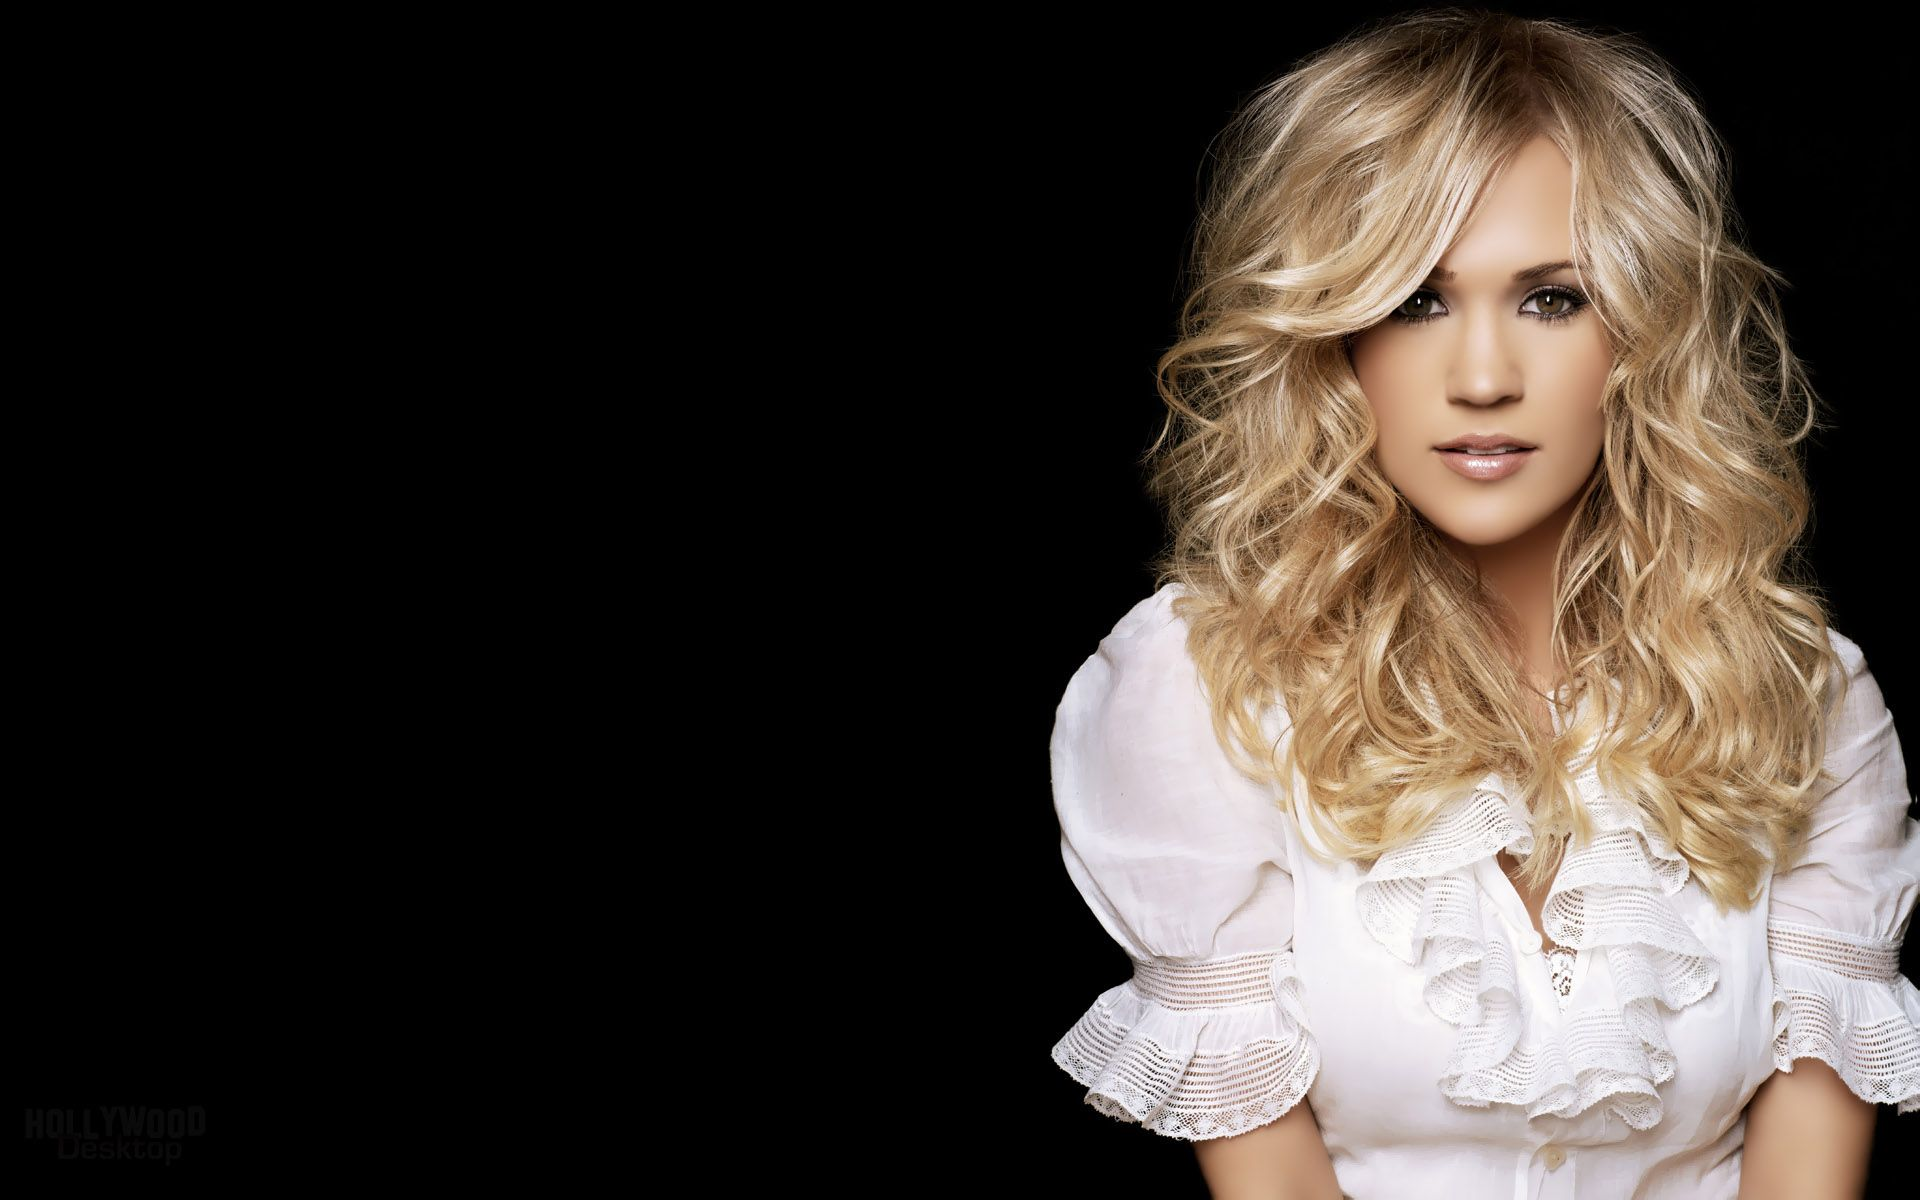 carrie underwood | Carrie Underwood Hot Photos, Images, Pics, Pictures Wallpapers.